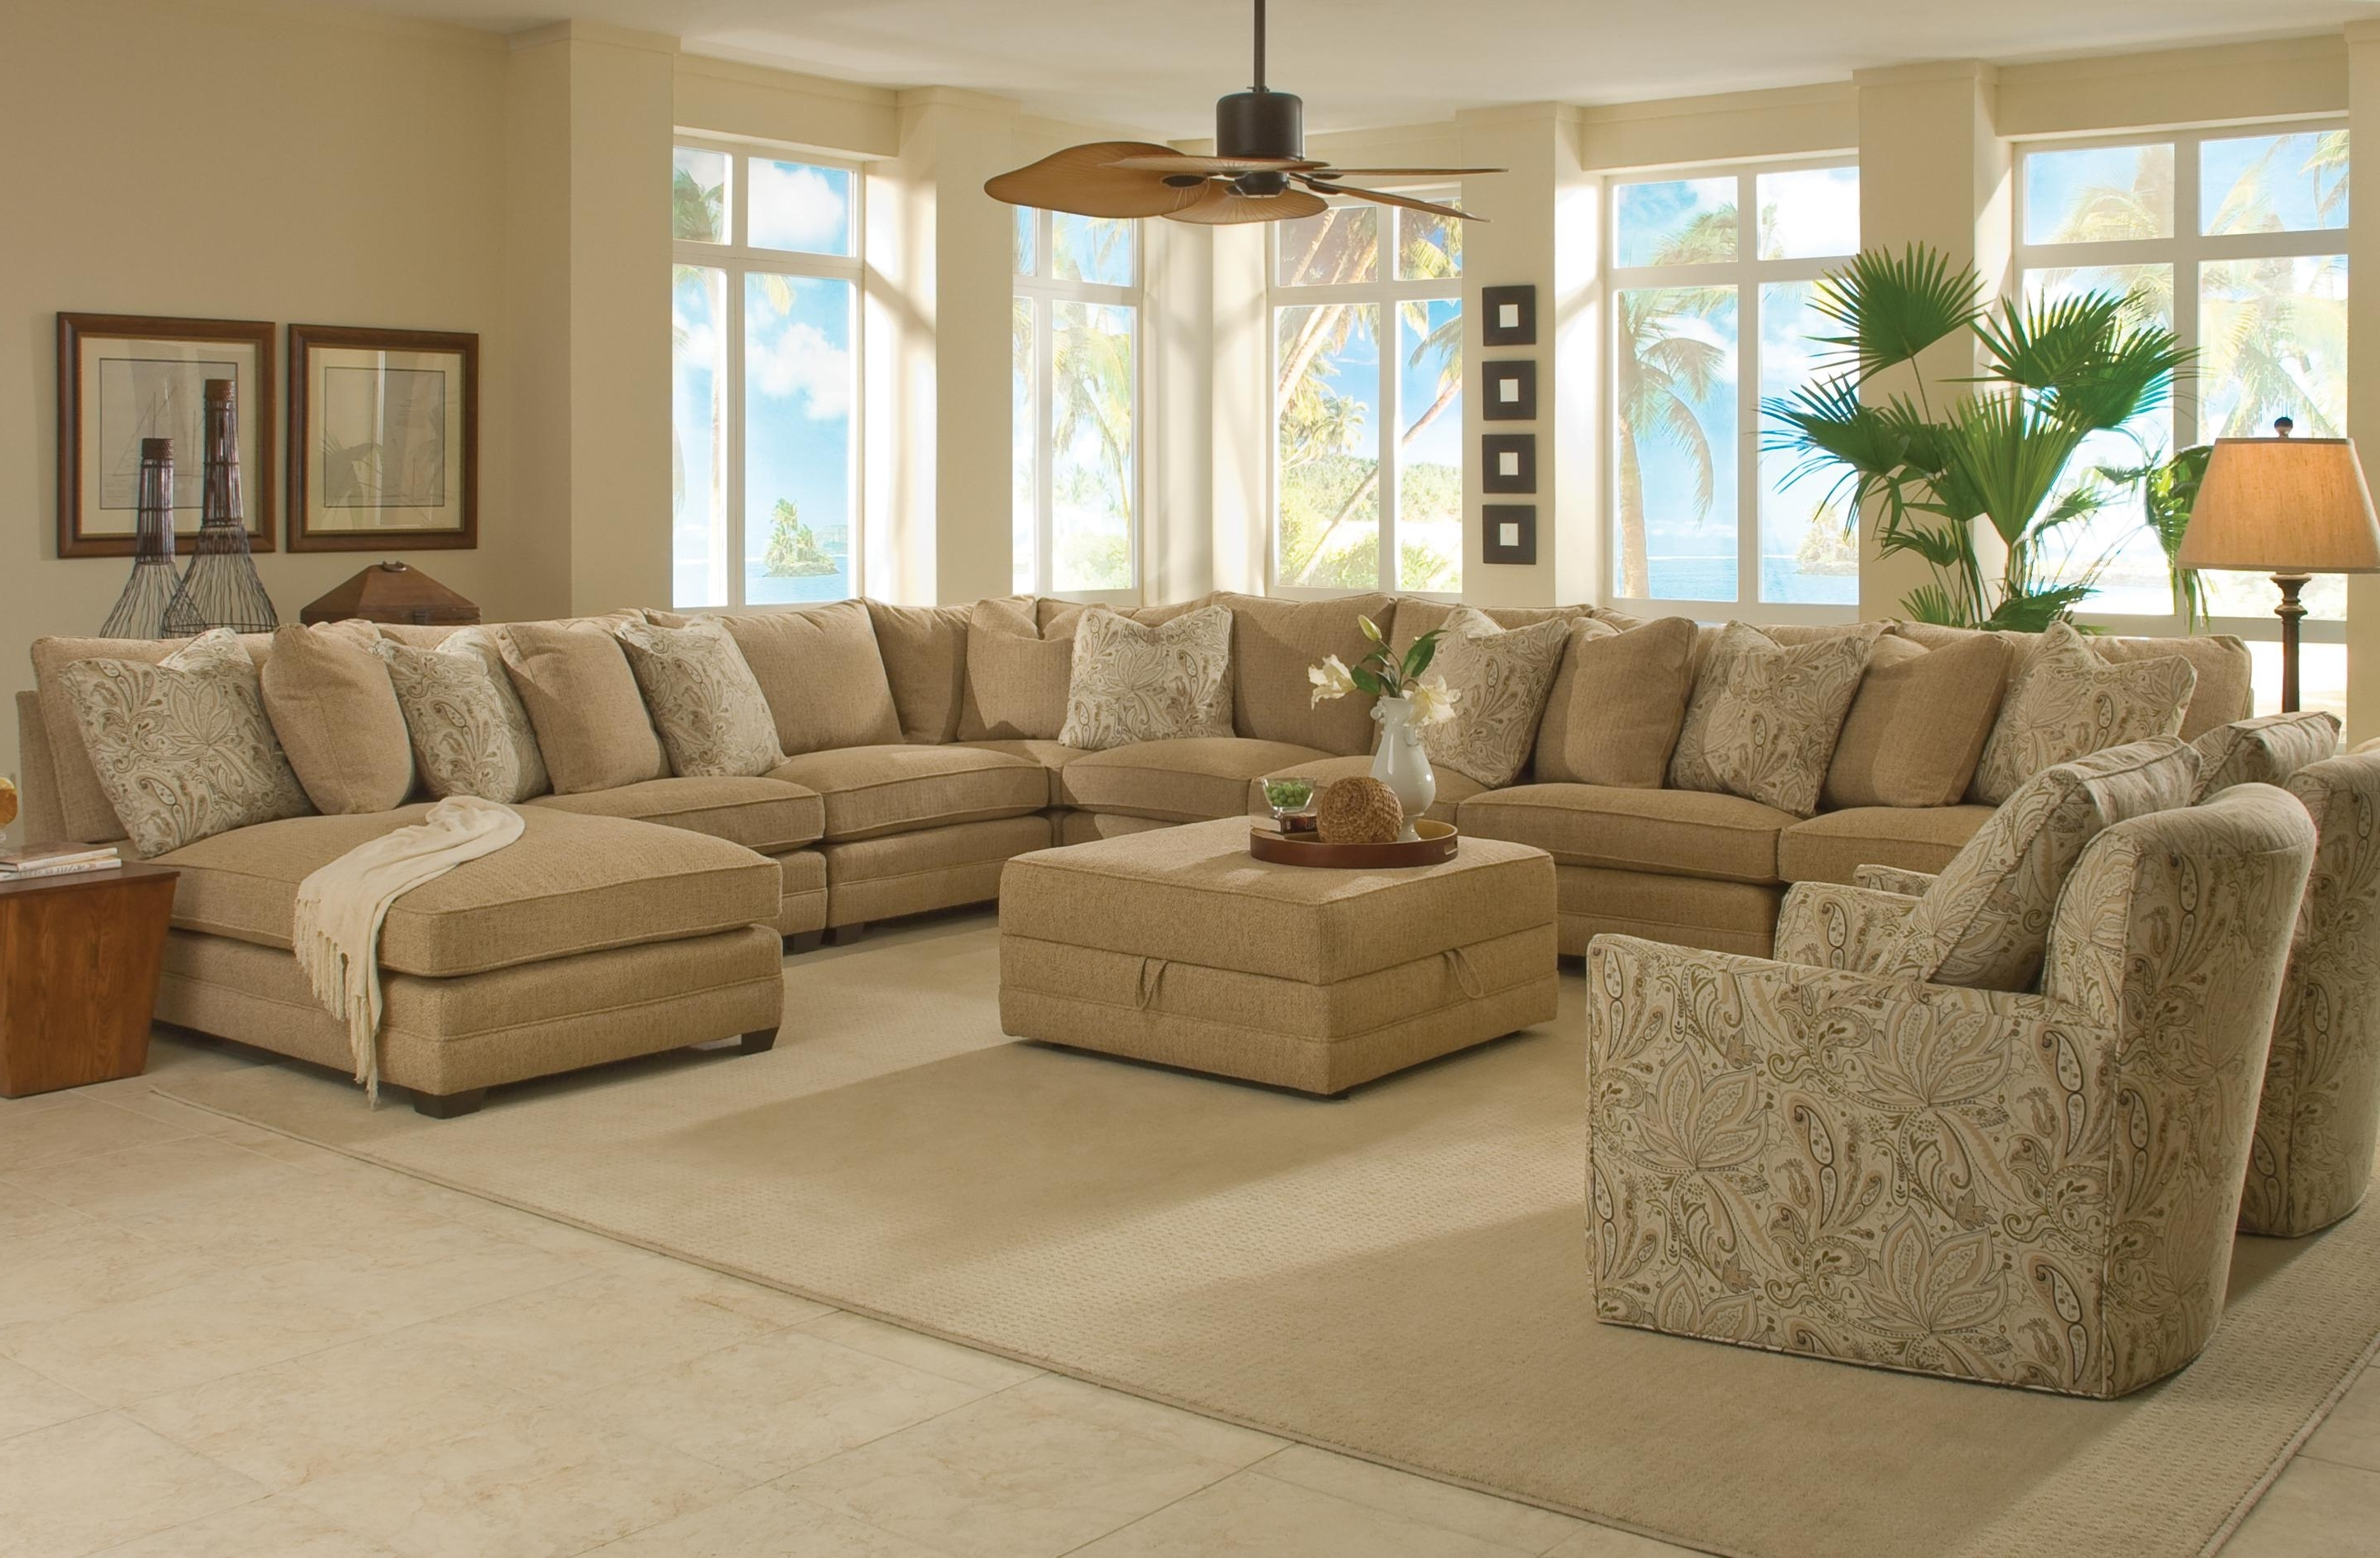 Extra Wide Sectional Sofa – Cleanupflorida Throughout Most Recent Sectional Sofas At Austin (View 19 of 20)